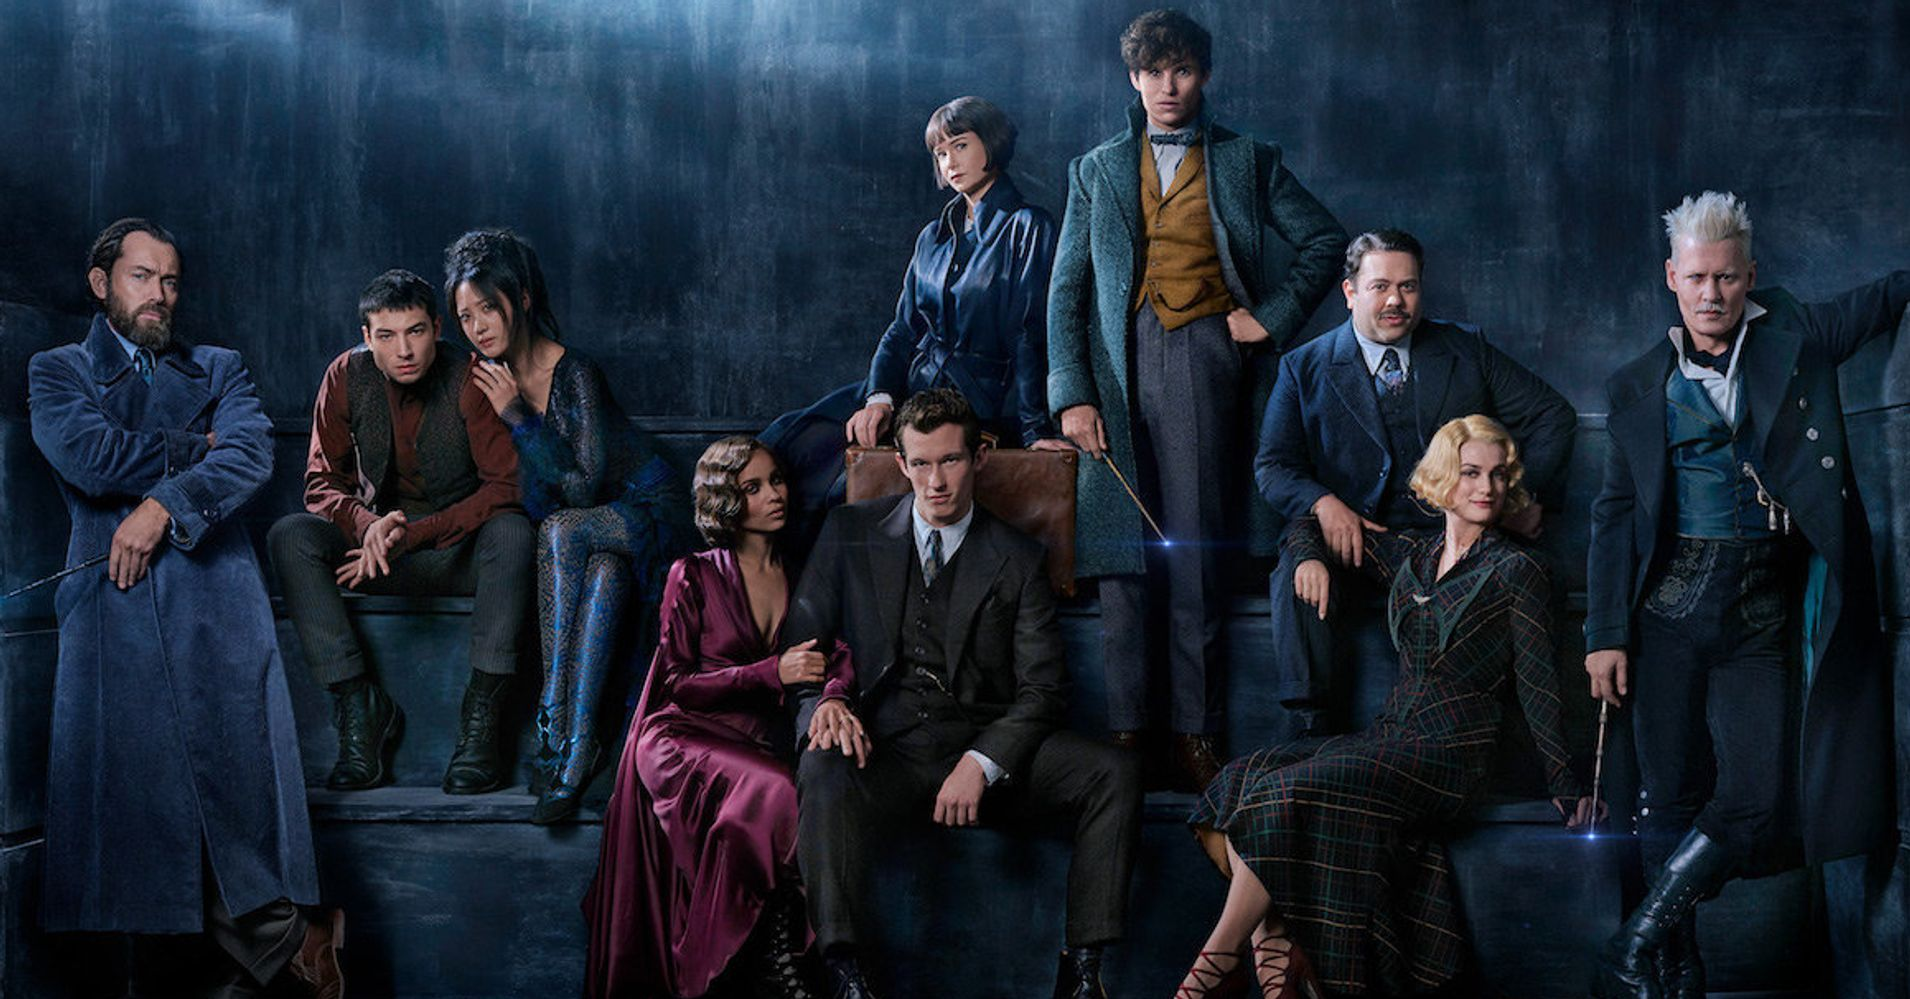 'Fantastic Beasts' Sequel First Look Reveals Jude Law As Young Dumbledore